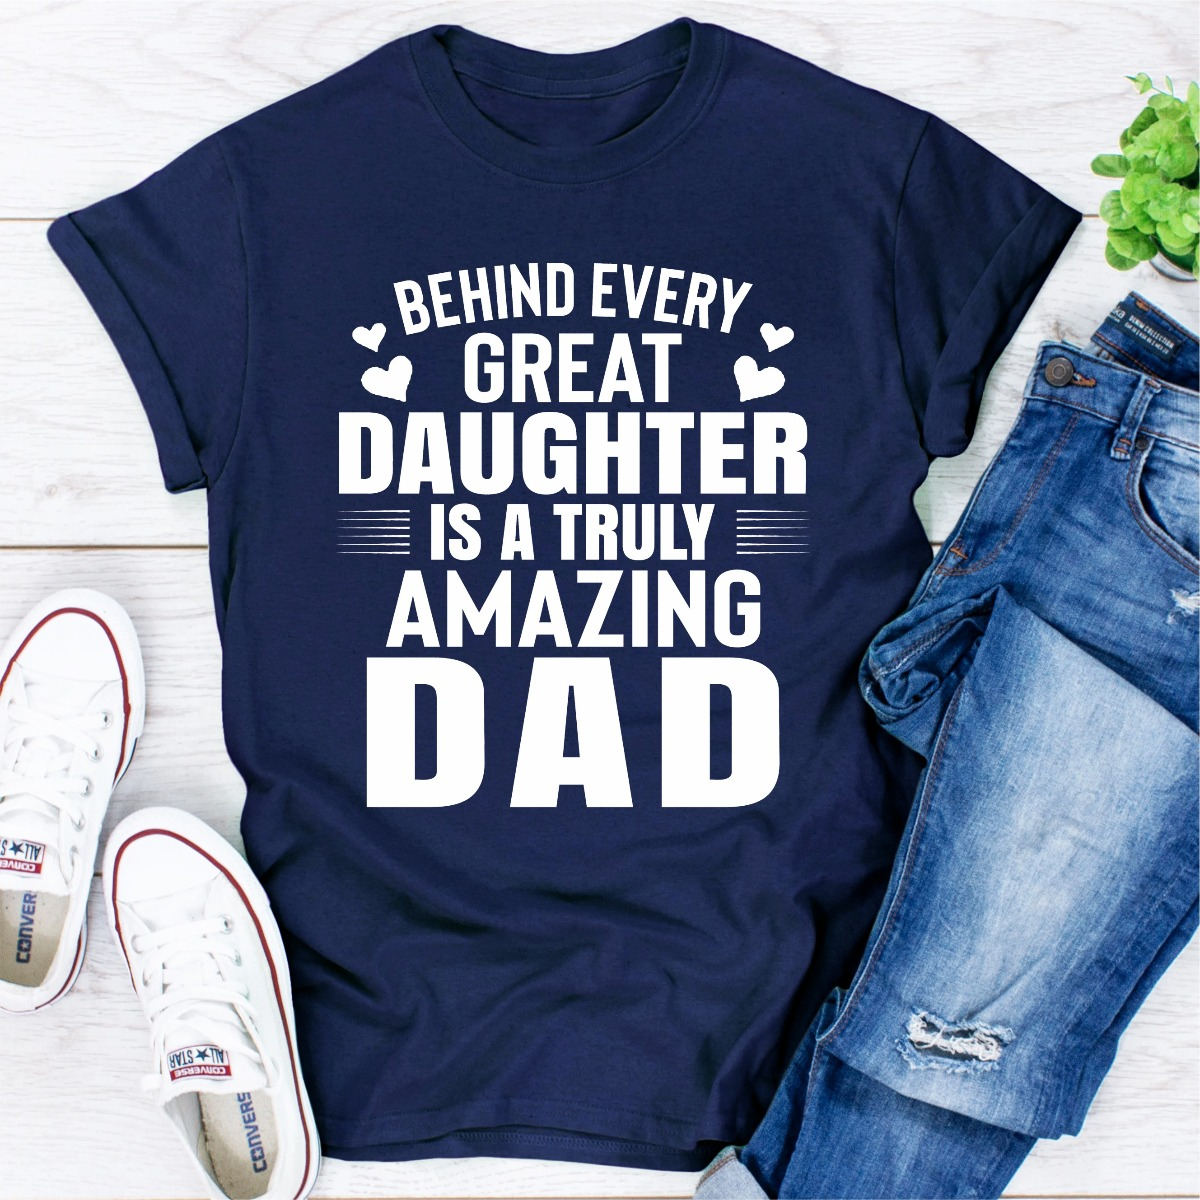 Behind Every Great Daughter Is A Truly Amazing Dad (Navy / S)